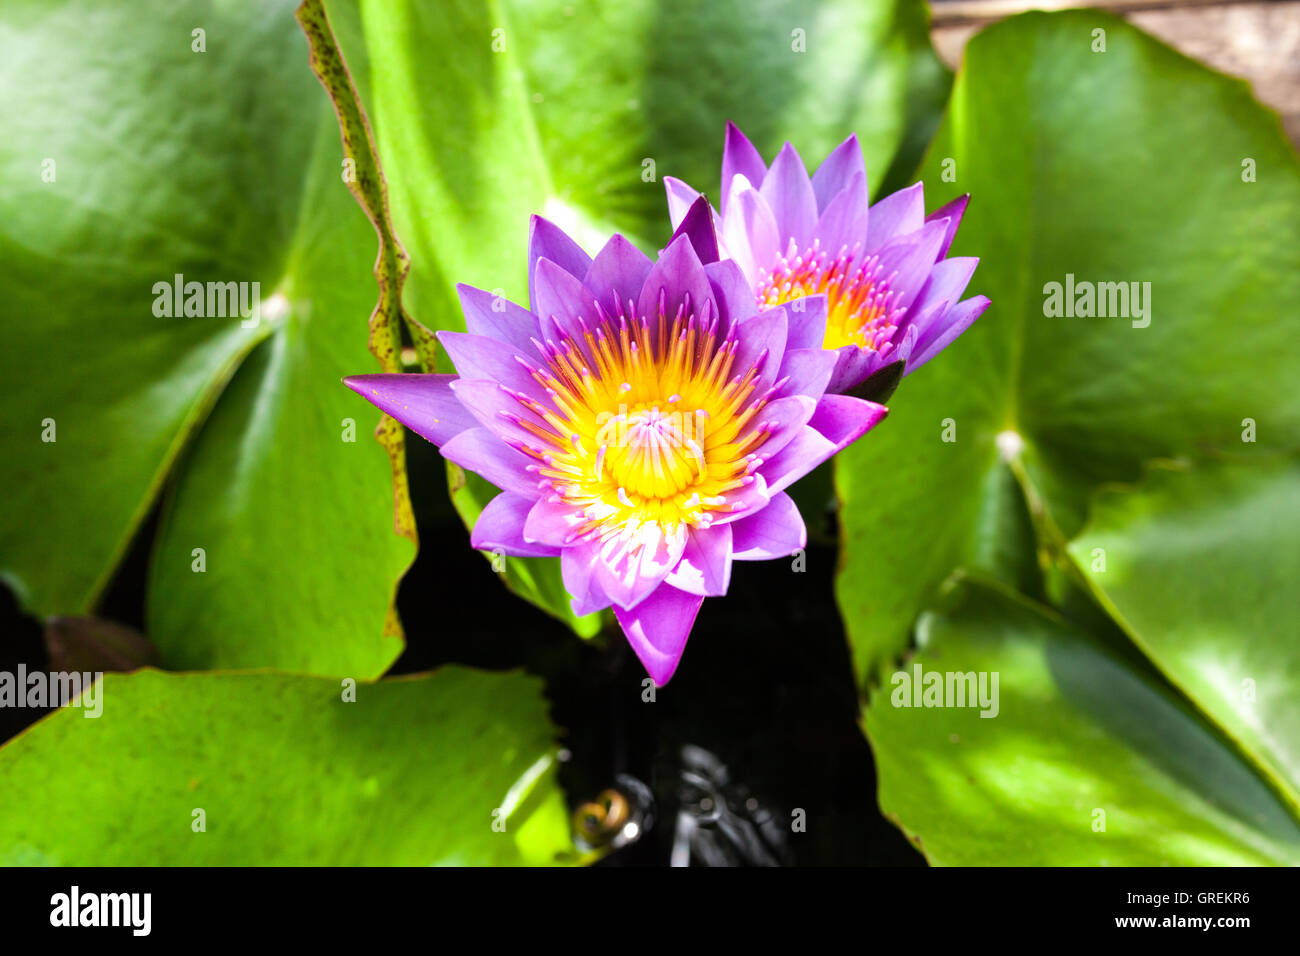 Beautiful lotus flower. Saturated colors and vibrant detail make ...